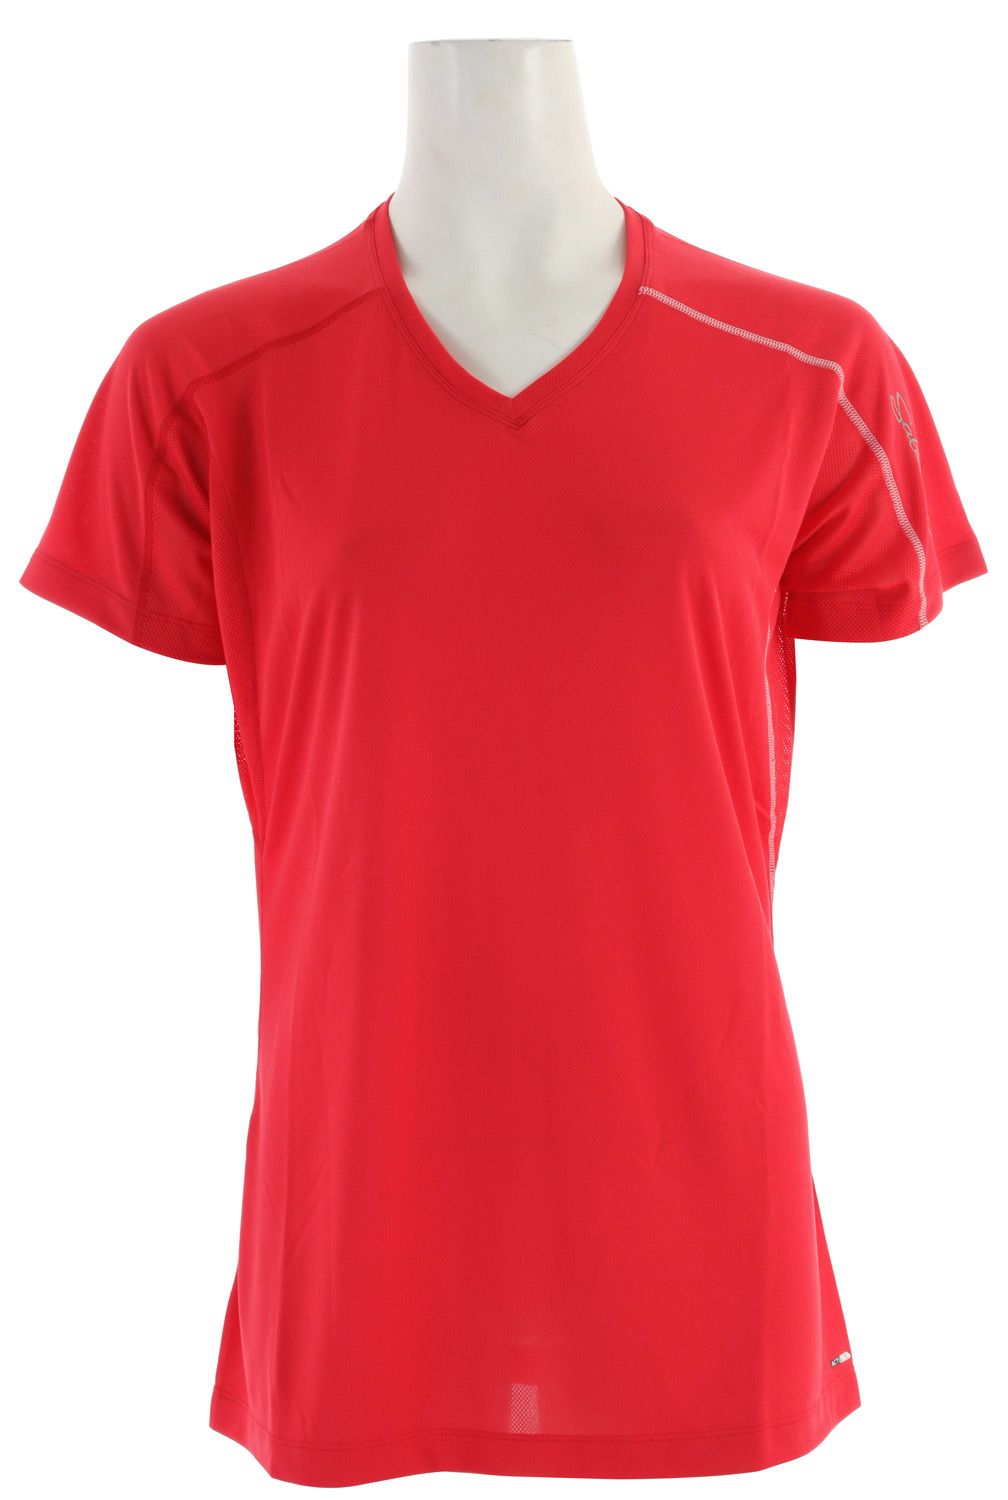 Fitness Relaxed fitting, versatile tee for running and outdoor sports with stretch actiLITE fabric and mesh underarm. Updated seam detailing and stash pocket.Key Features of the Salomon Trail IV T-Shirt: SMART SKIN Flatlock Seams Stash Pocket Reflective Branding Front & Back actiLITE Stretch Mesh actiLITE Poly Mock Eyelet Relax Fit - $18.95